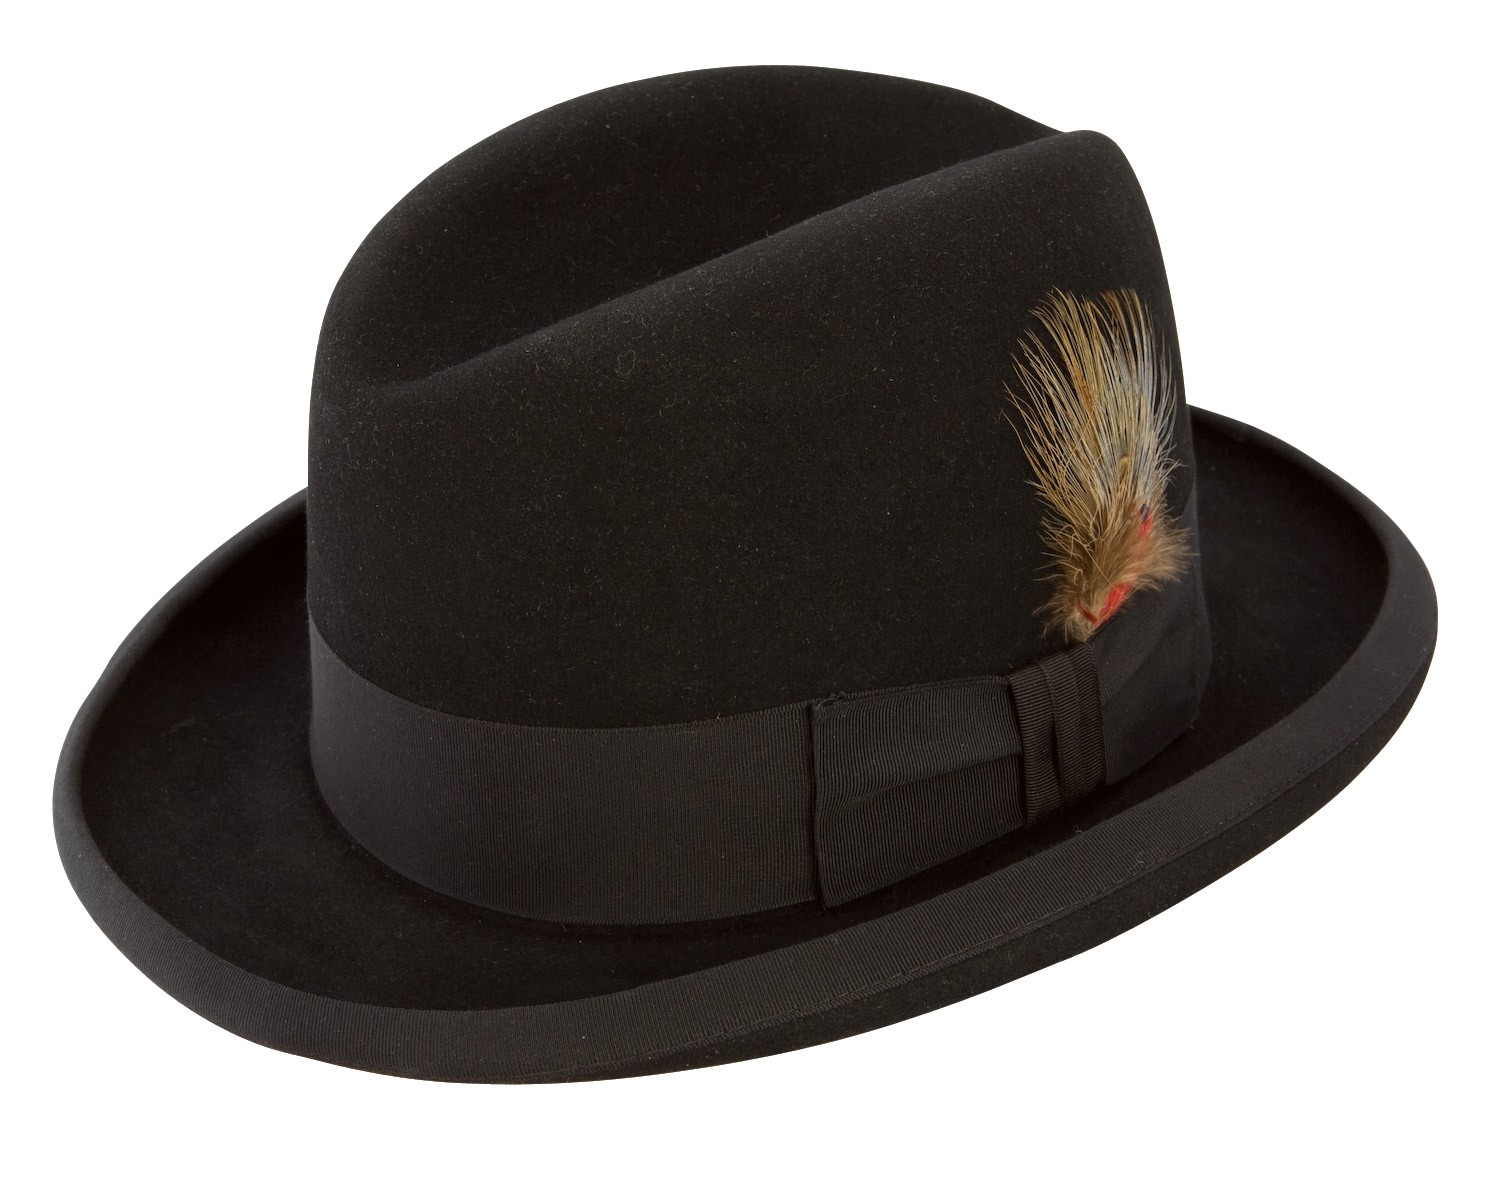 97d81e756e030 Don t let the name of this Stetson Homburg Godfather Hat fool you. This hat  was worn for years before it was adopted by mobsters like Don Corleone.